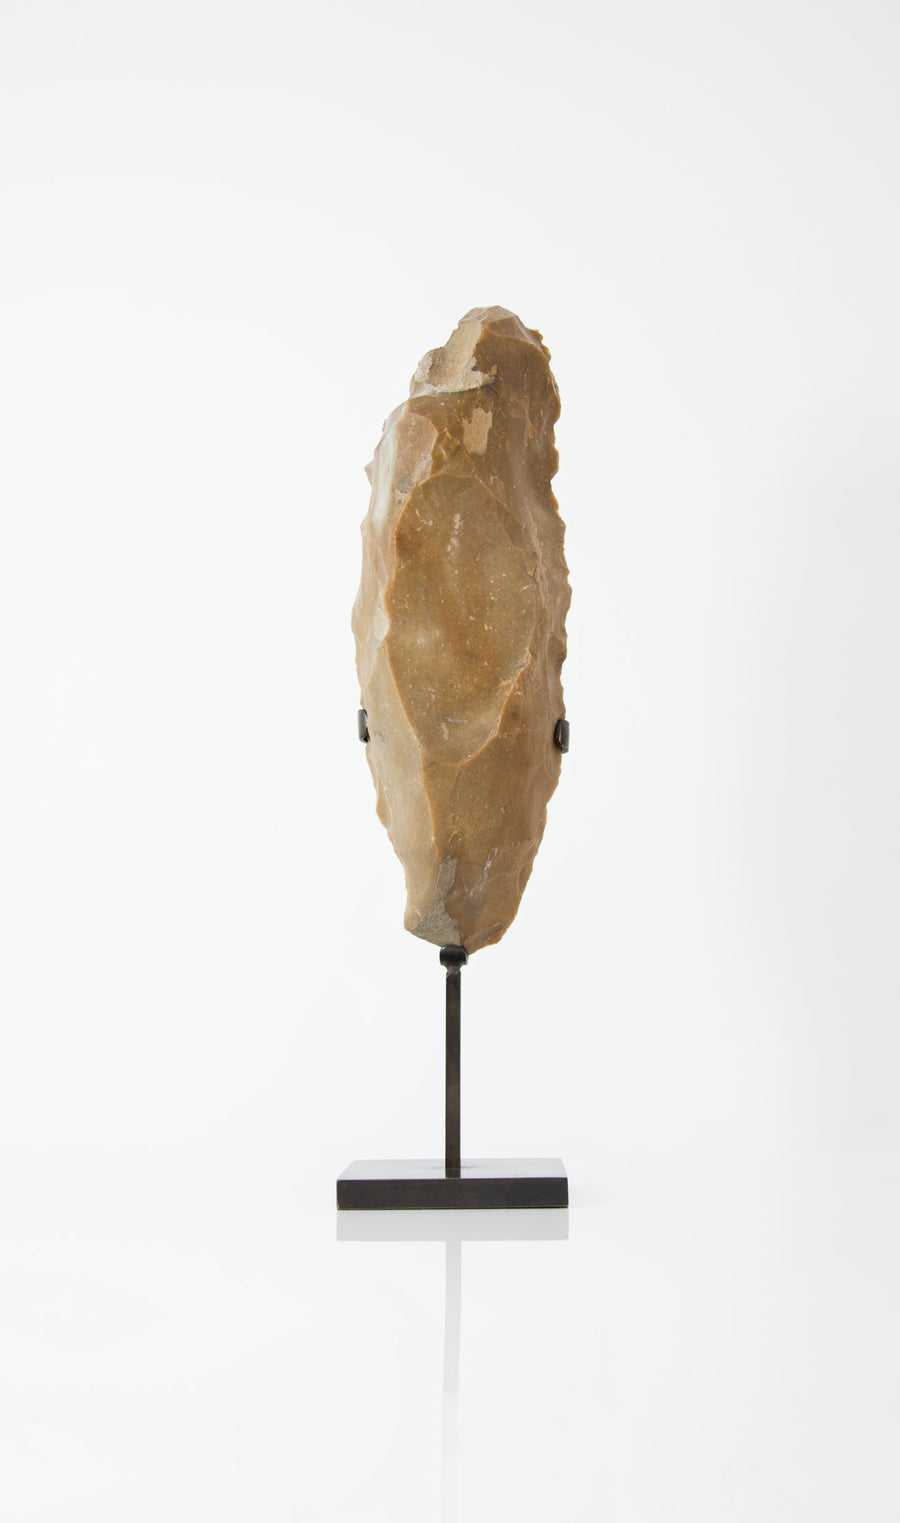 Neolithic Core Flint on a bronze stand